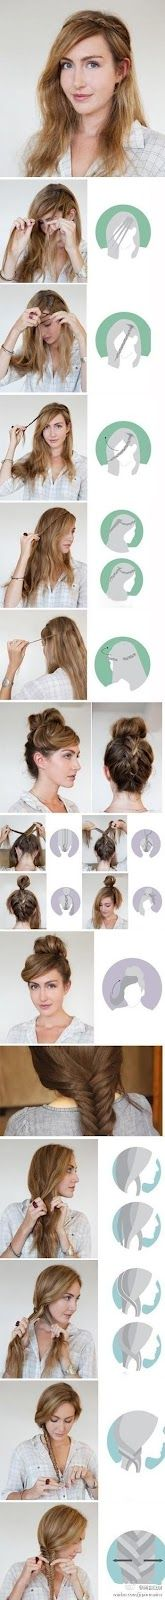 Quick & Easy Hairstyles!